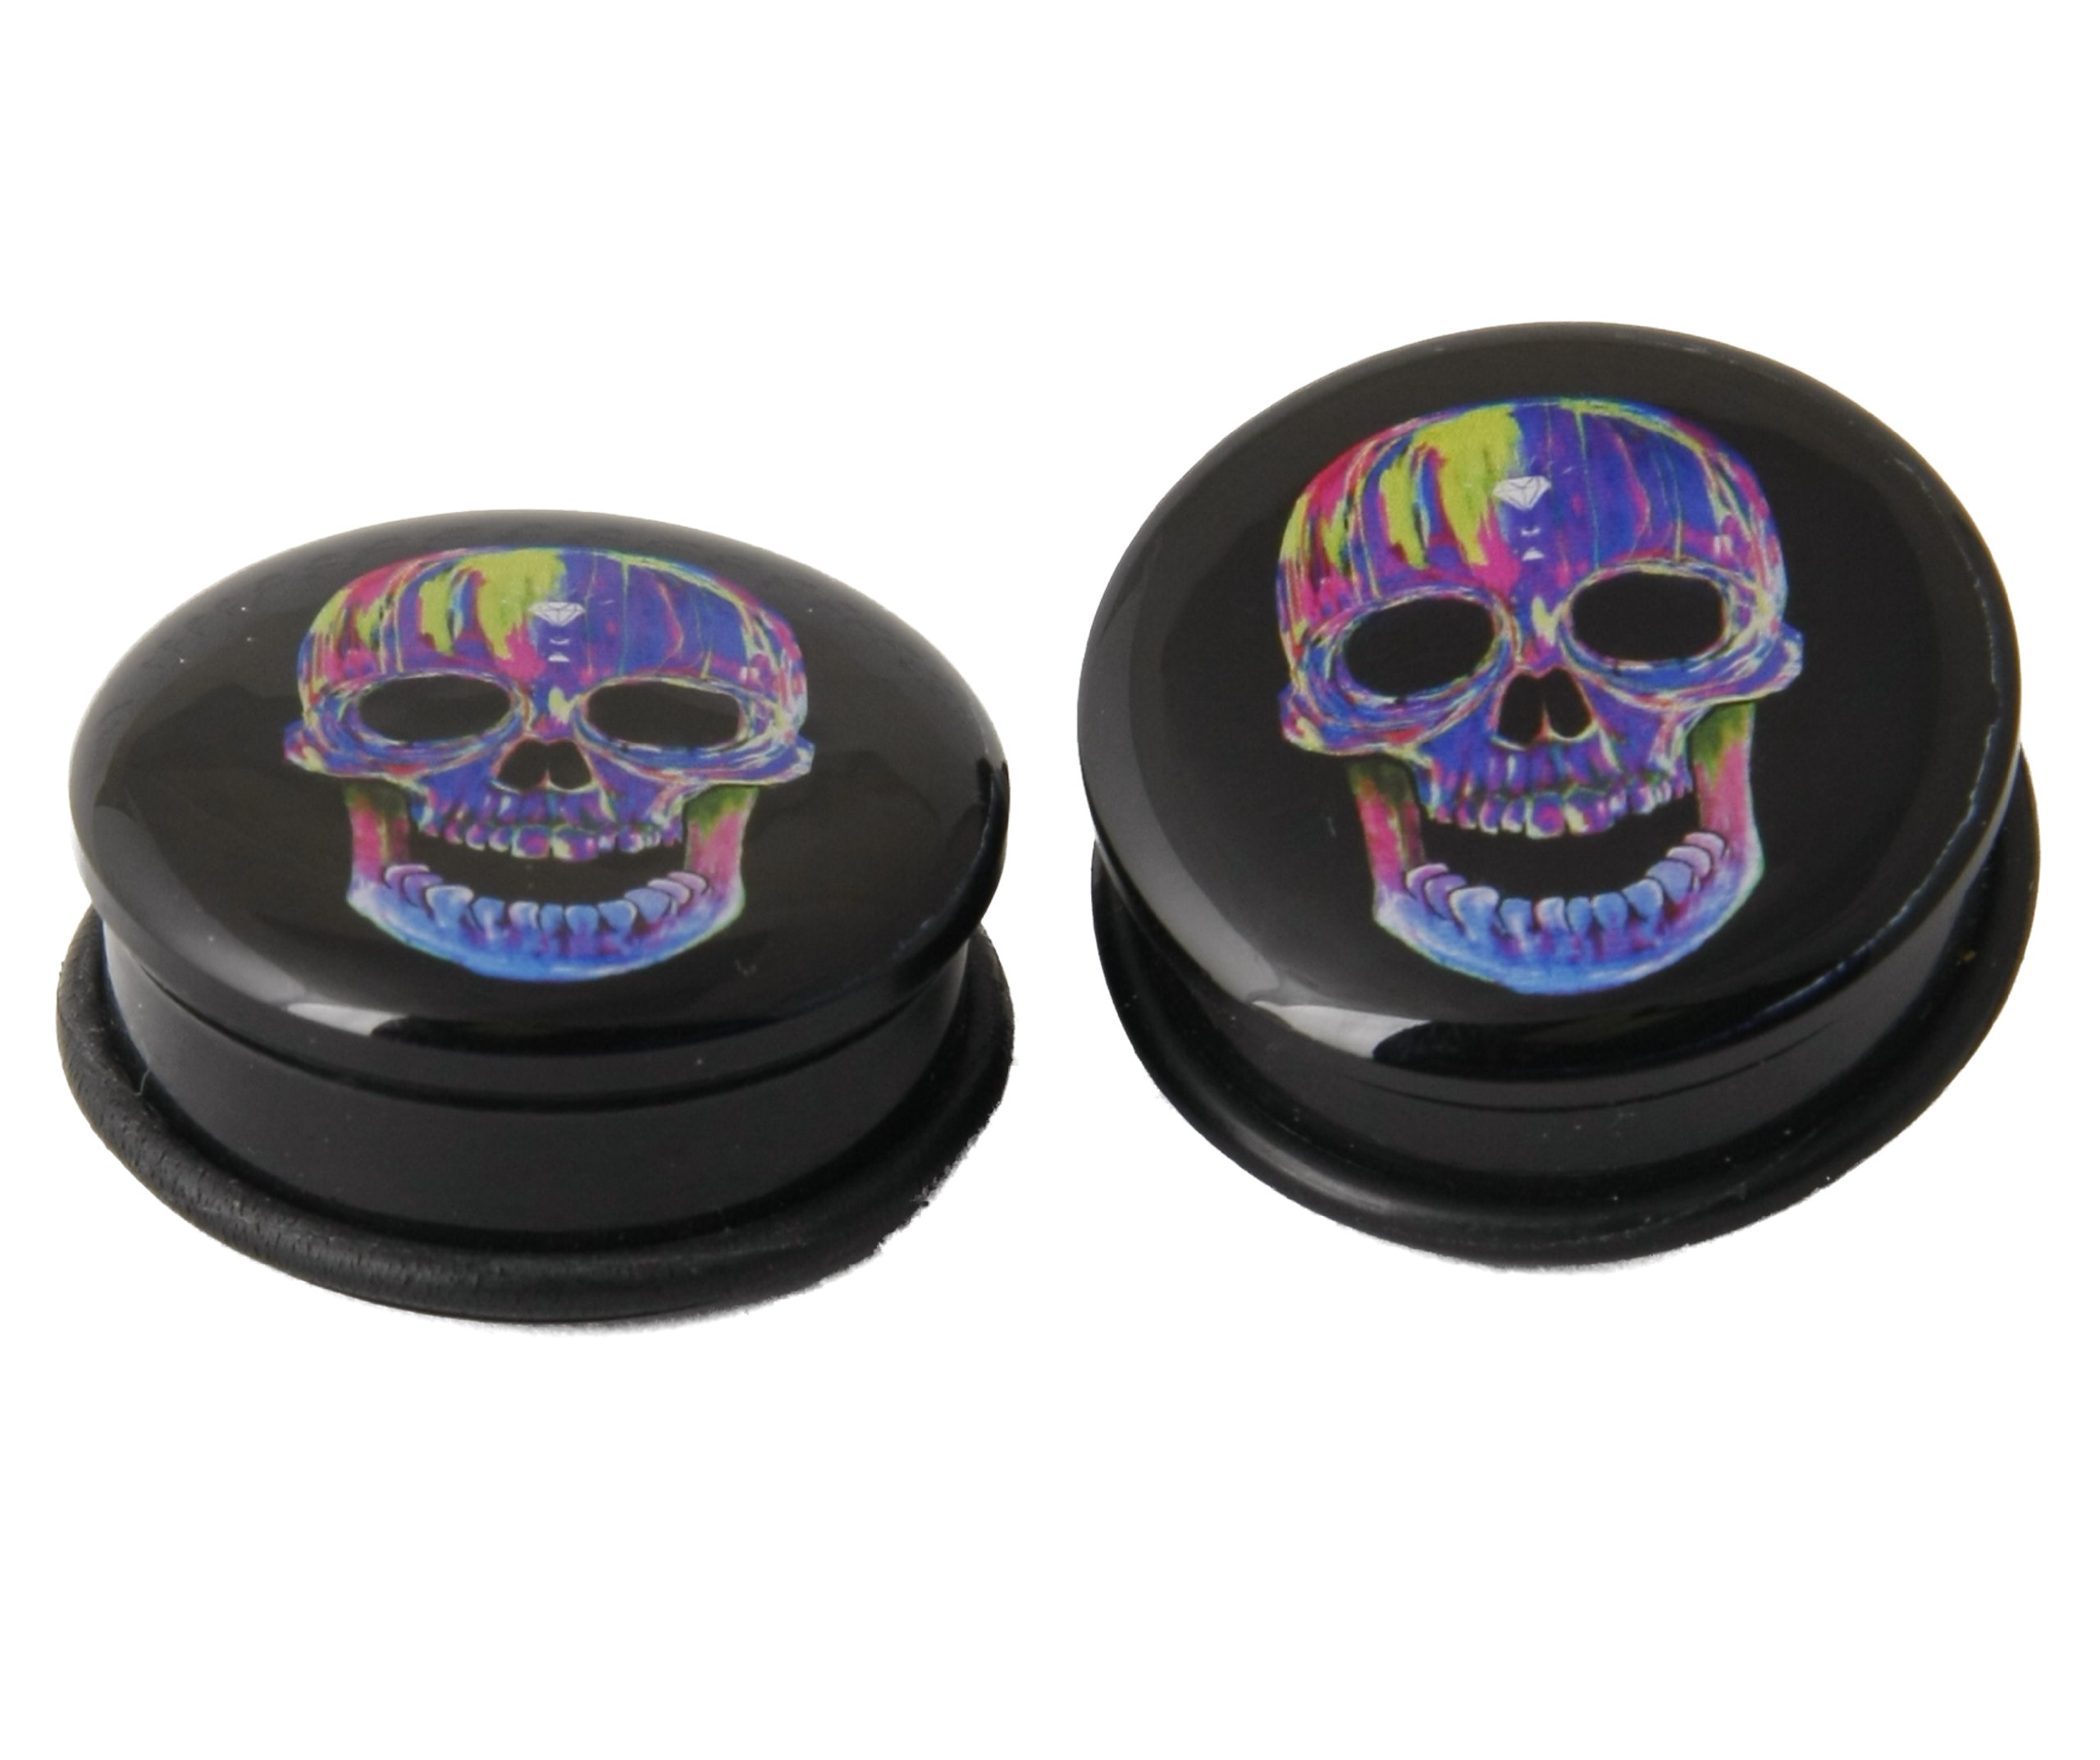 JewelryVolt Indian Apache Skull Design Colorful Acrylic Double Flare Solid Tunnel Ear Plugs Gauges (10 Millimeters)